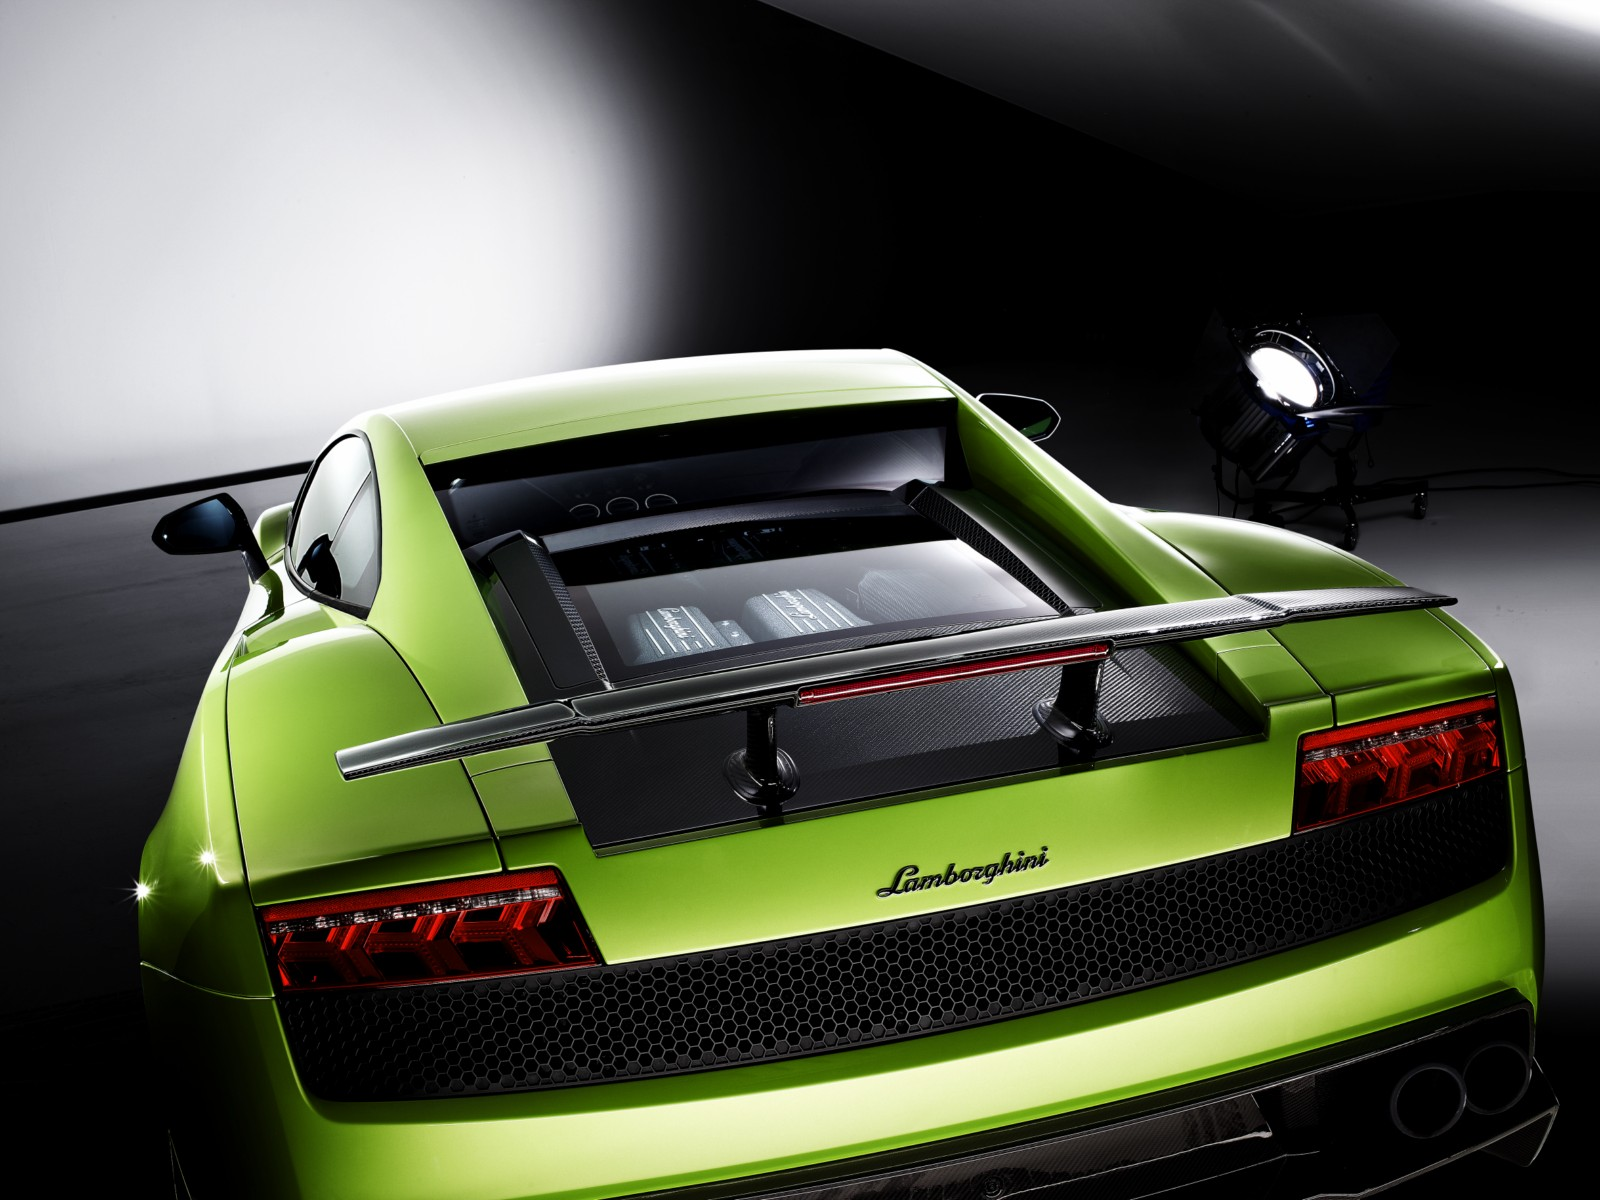 Lamborghini Giving The Boot To Manual Transmissions